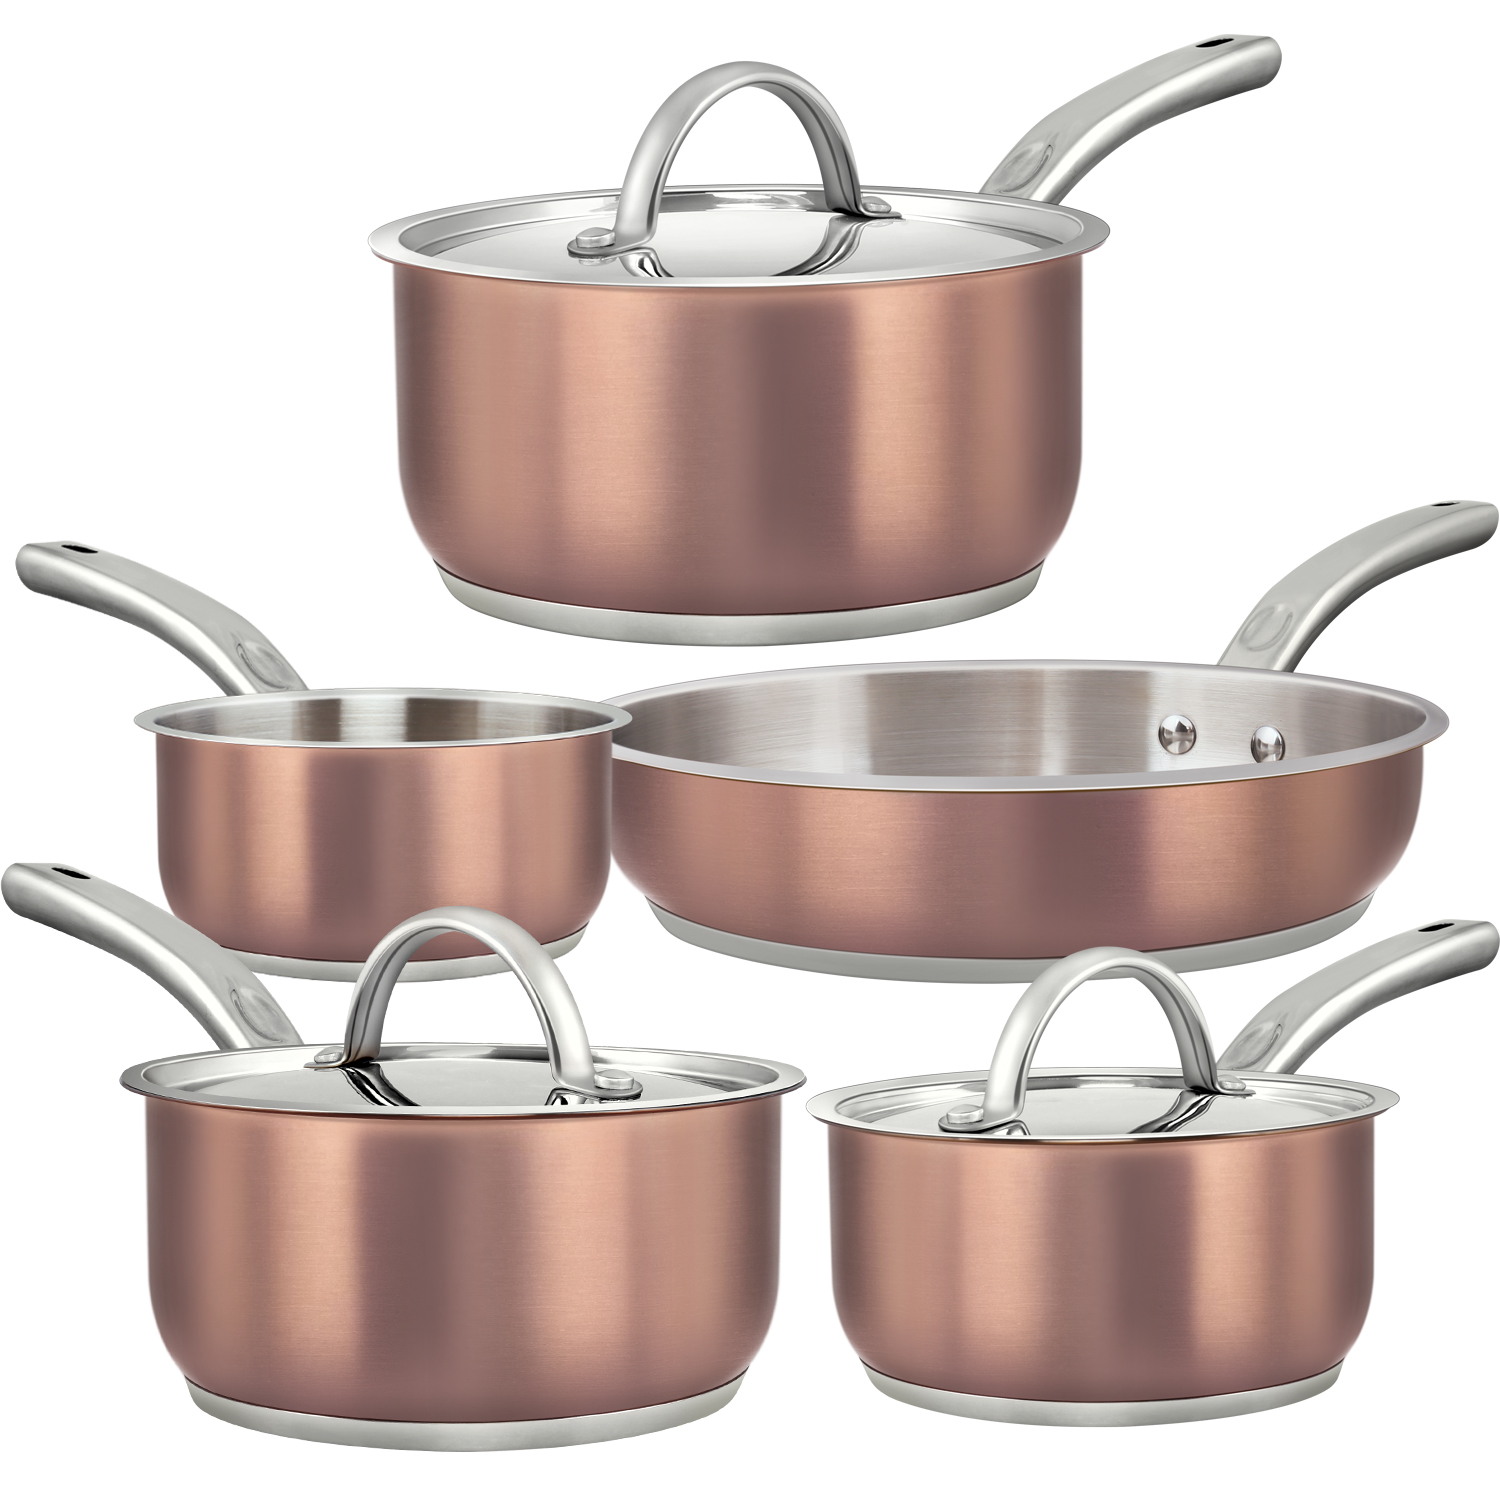 Tri-Ply Stainless Steel Non-Stick Pots and Pans Set with $10 Amazon Coupon